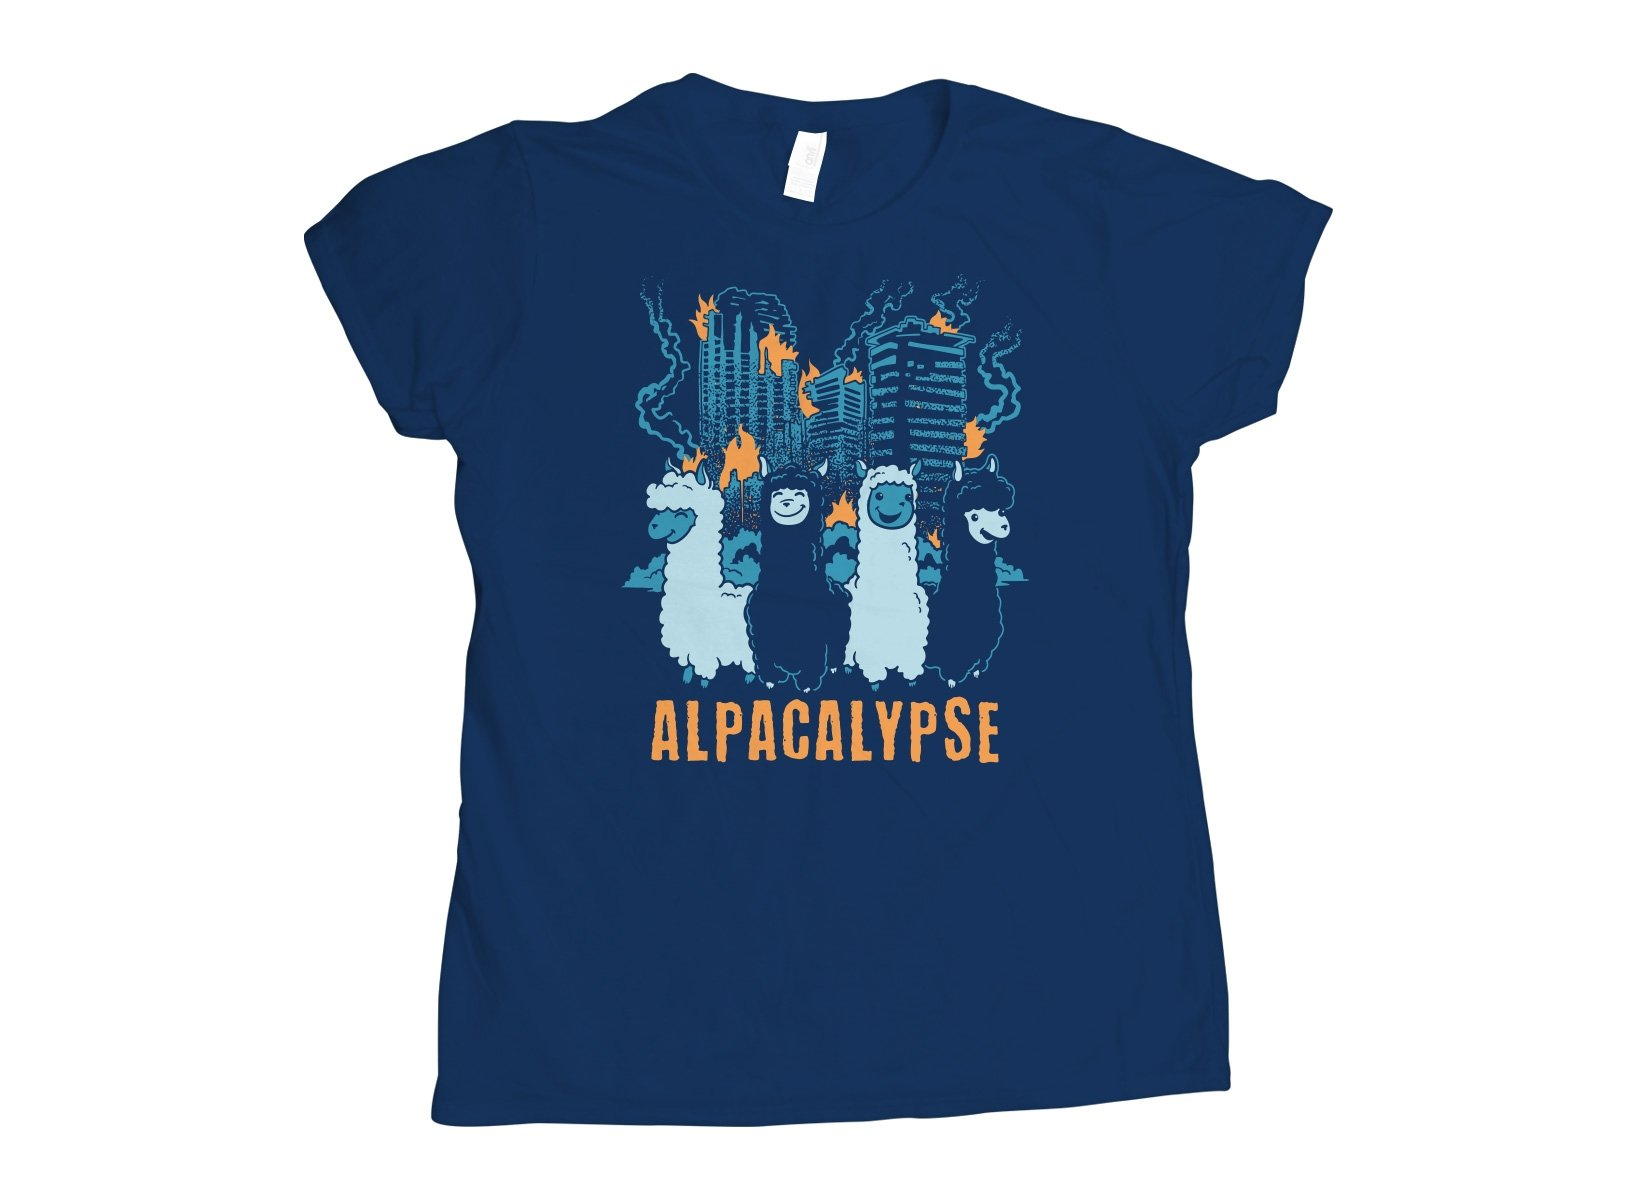 Alpacalypse on Womens T-Shirt